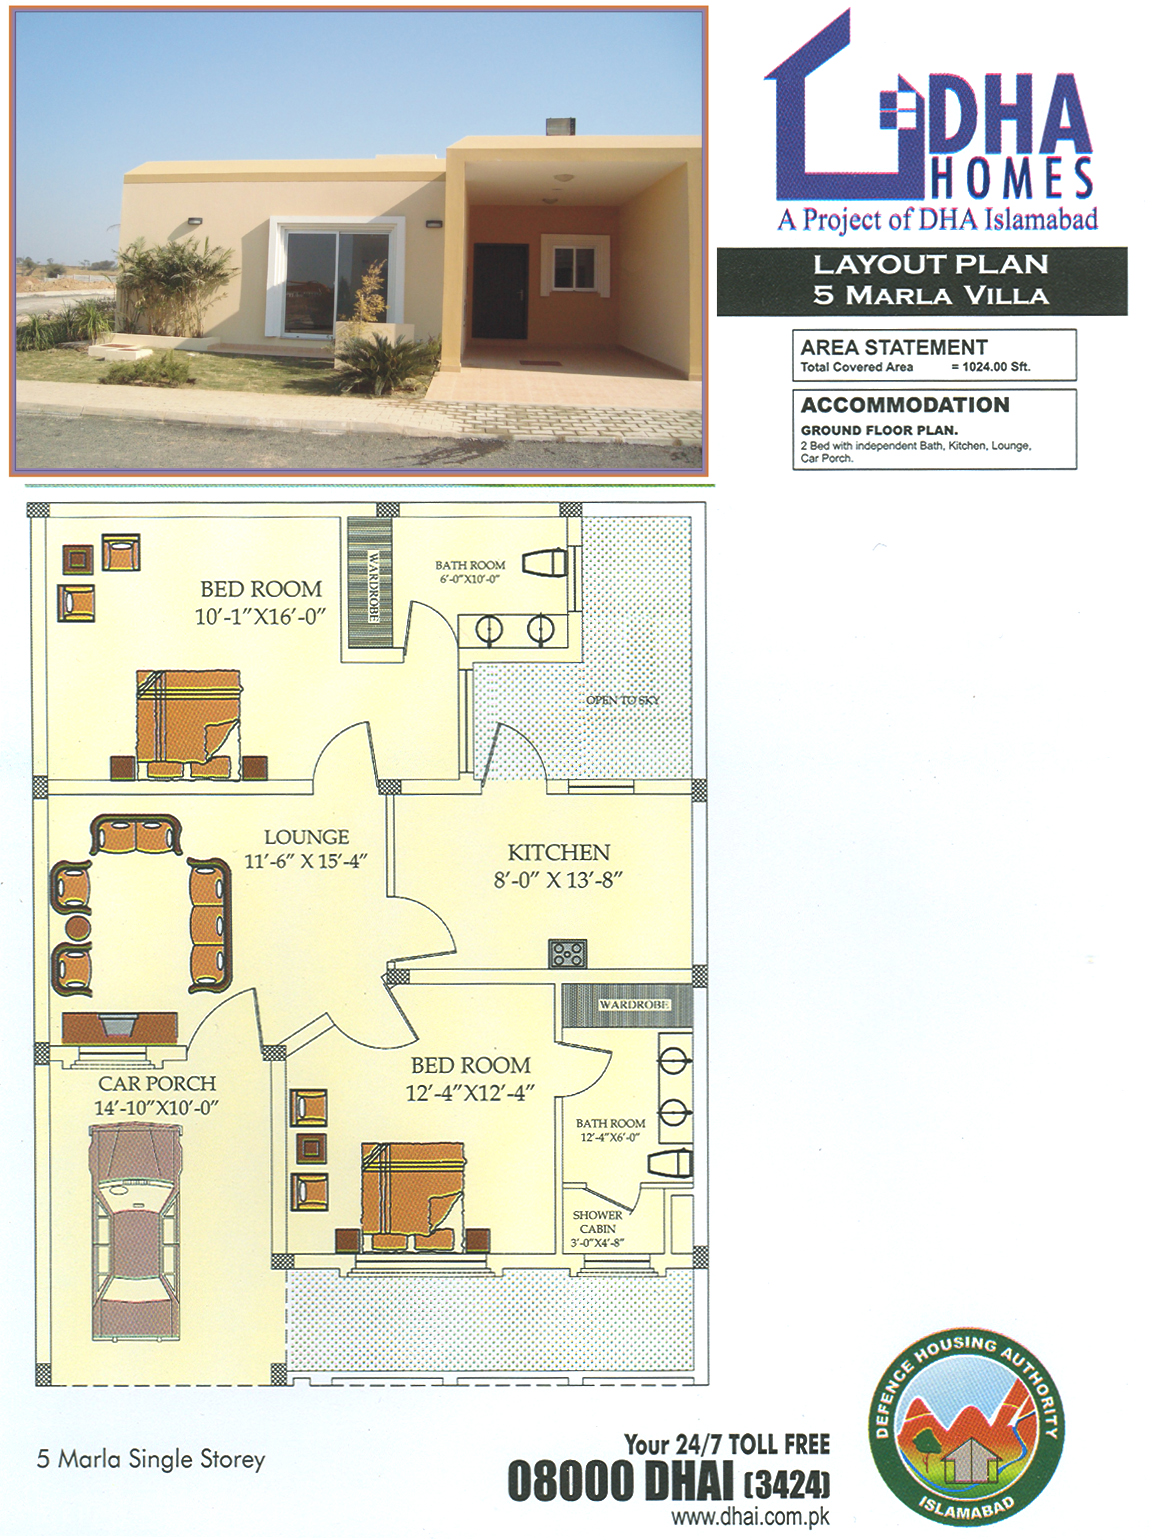 House map 4 building modern house Construction cost of 5 marla house